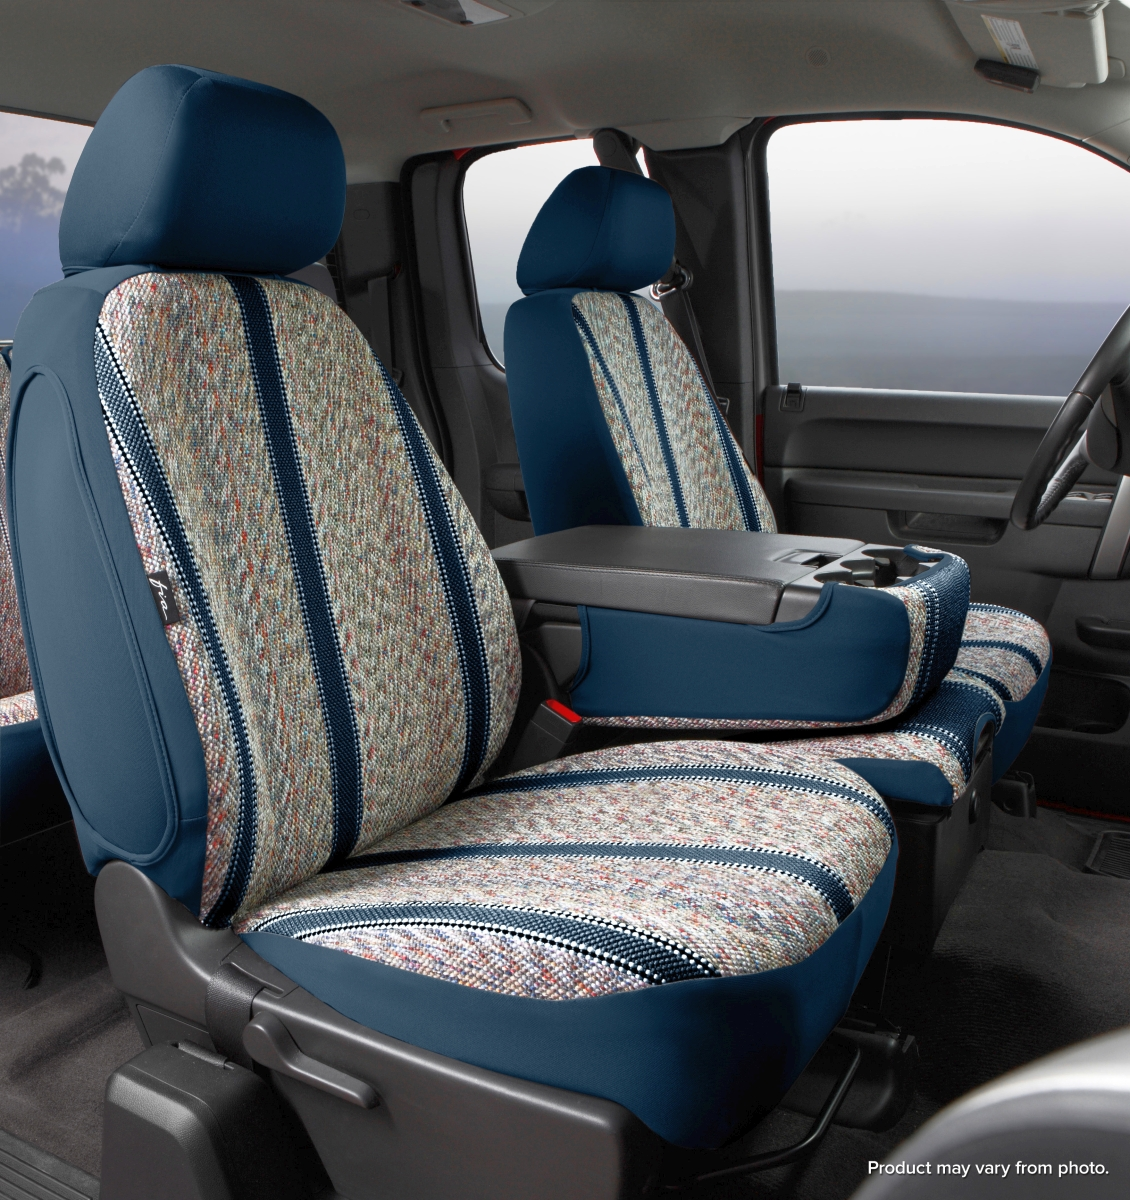 Fia Wrangler Series 1st Row Navy Seat Covers - Fia TR47-19 NAVY